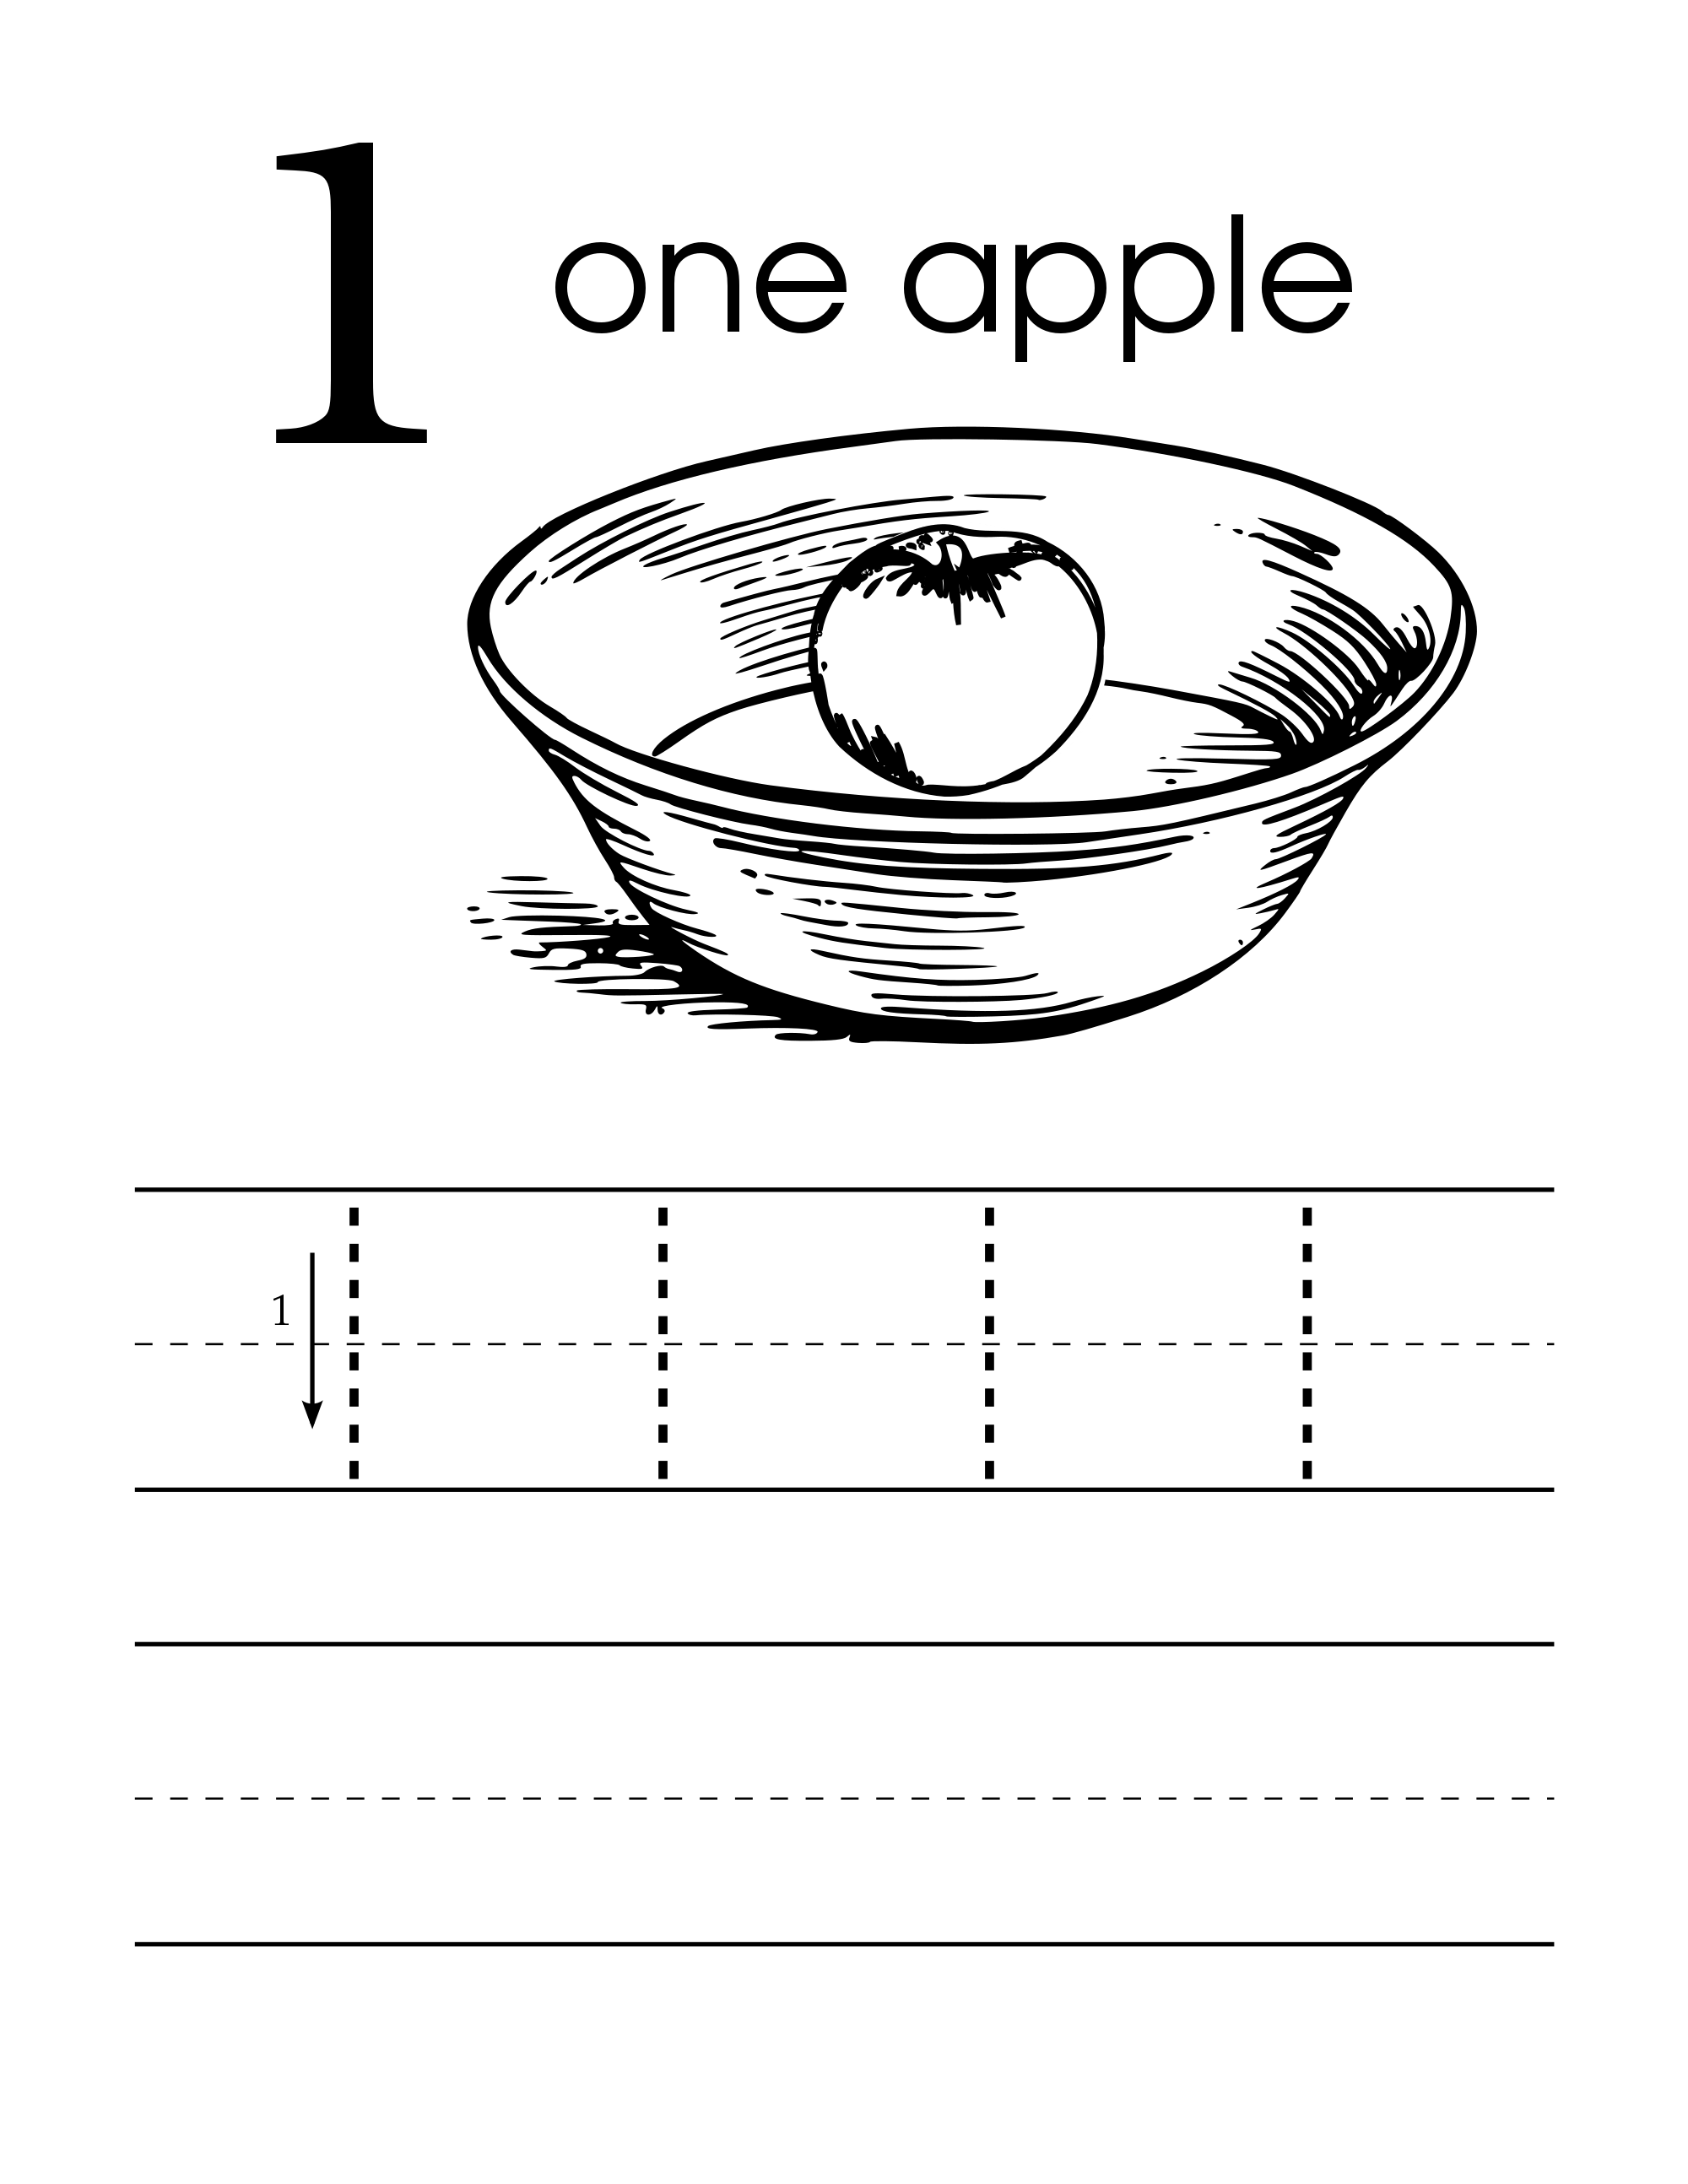 Number 1 One Handwriting Worksheet Preschool Level With An Apple In A Bowl